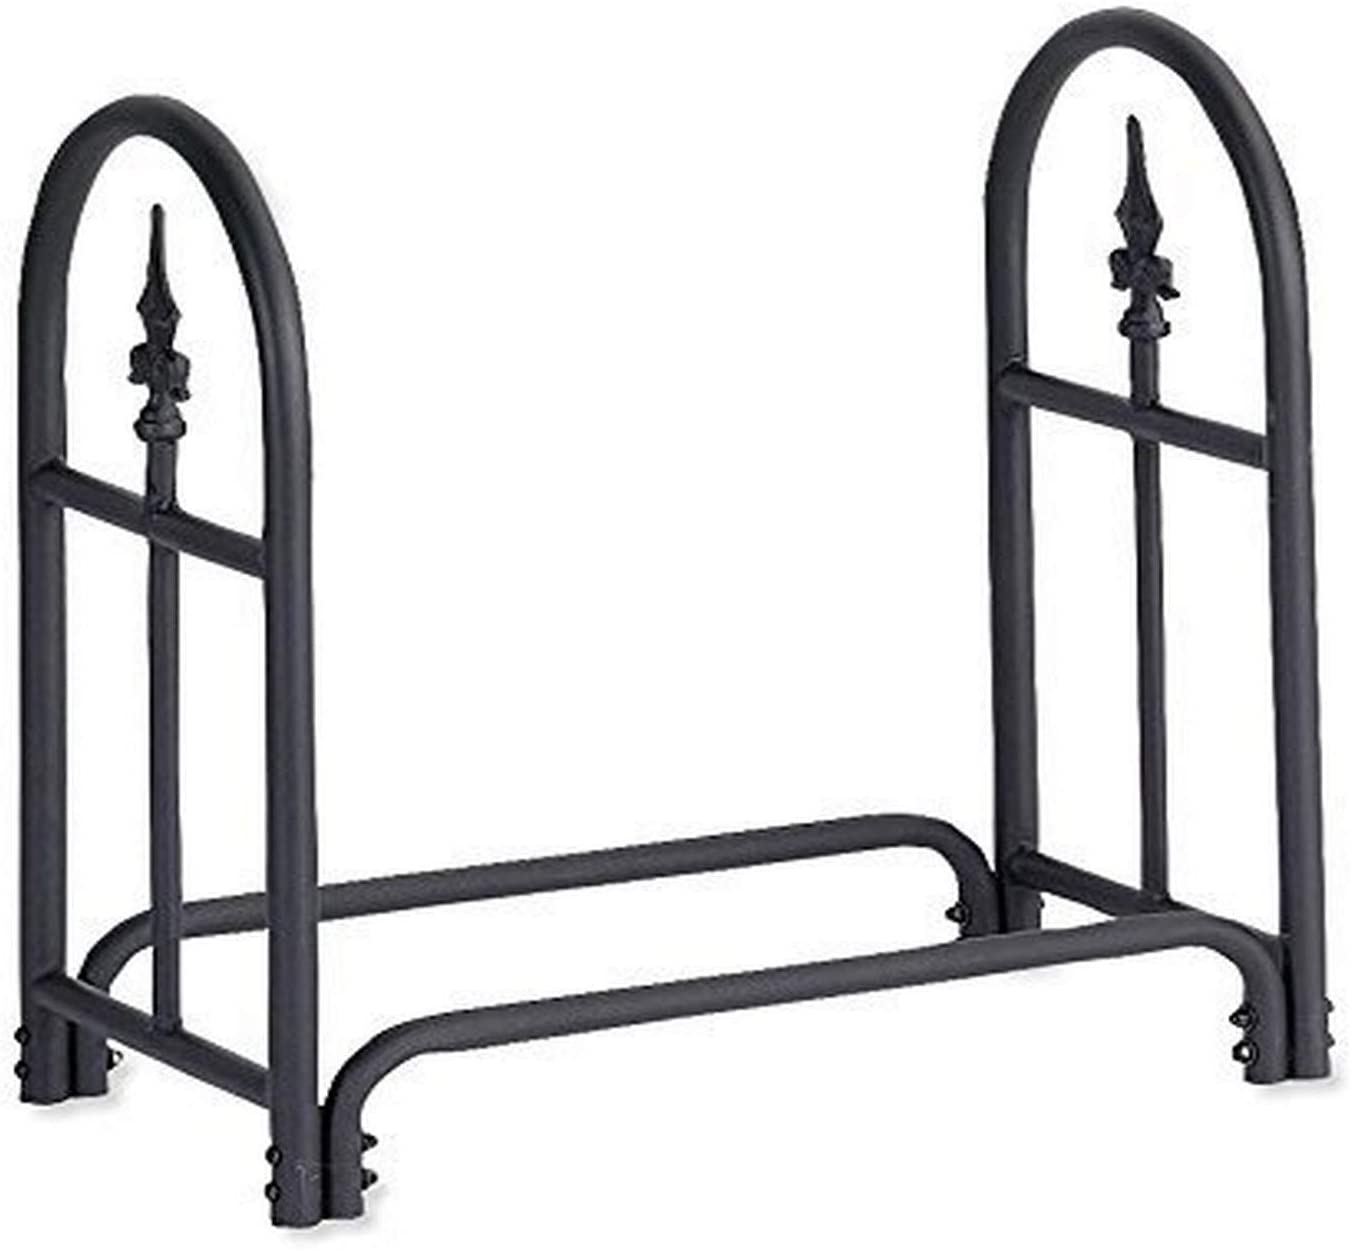 Plow & Hearth 10117 Heavy-Duty Steel Outdoor Firewood Rack